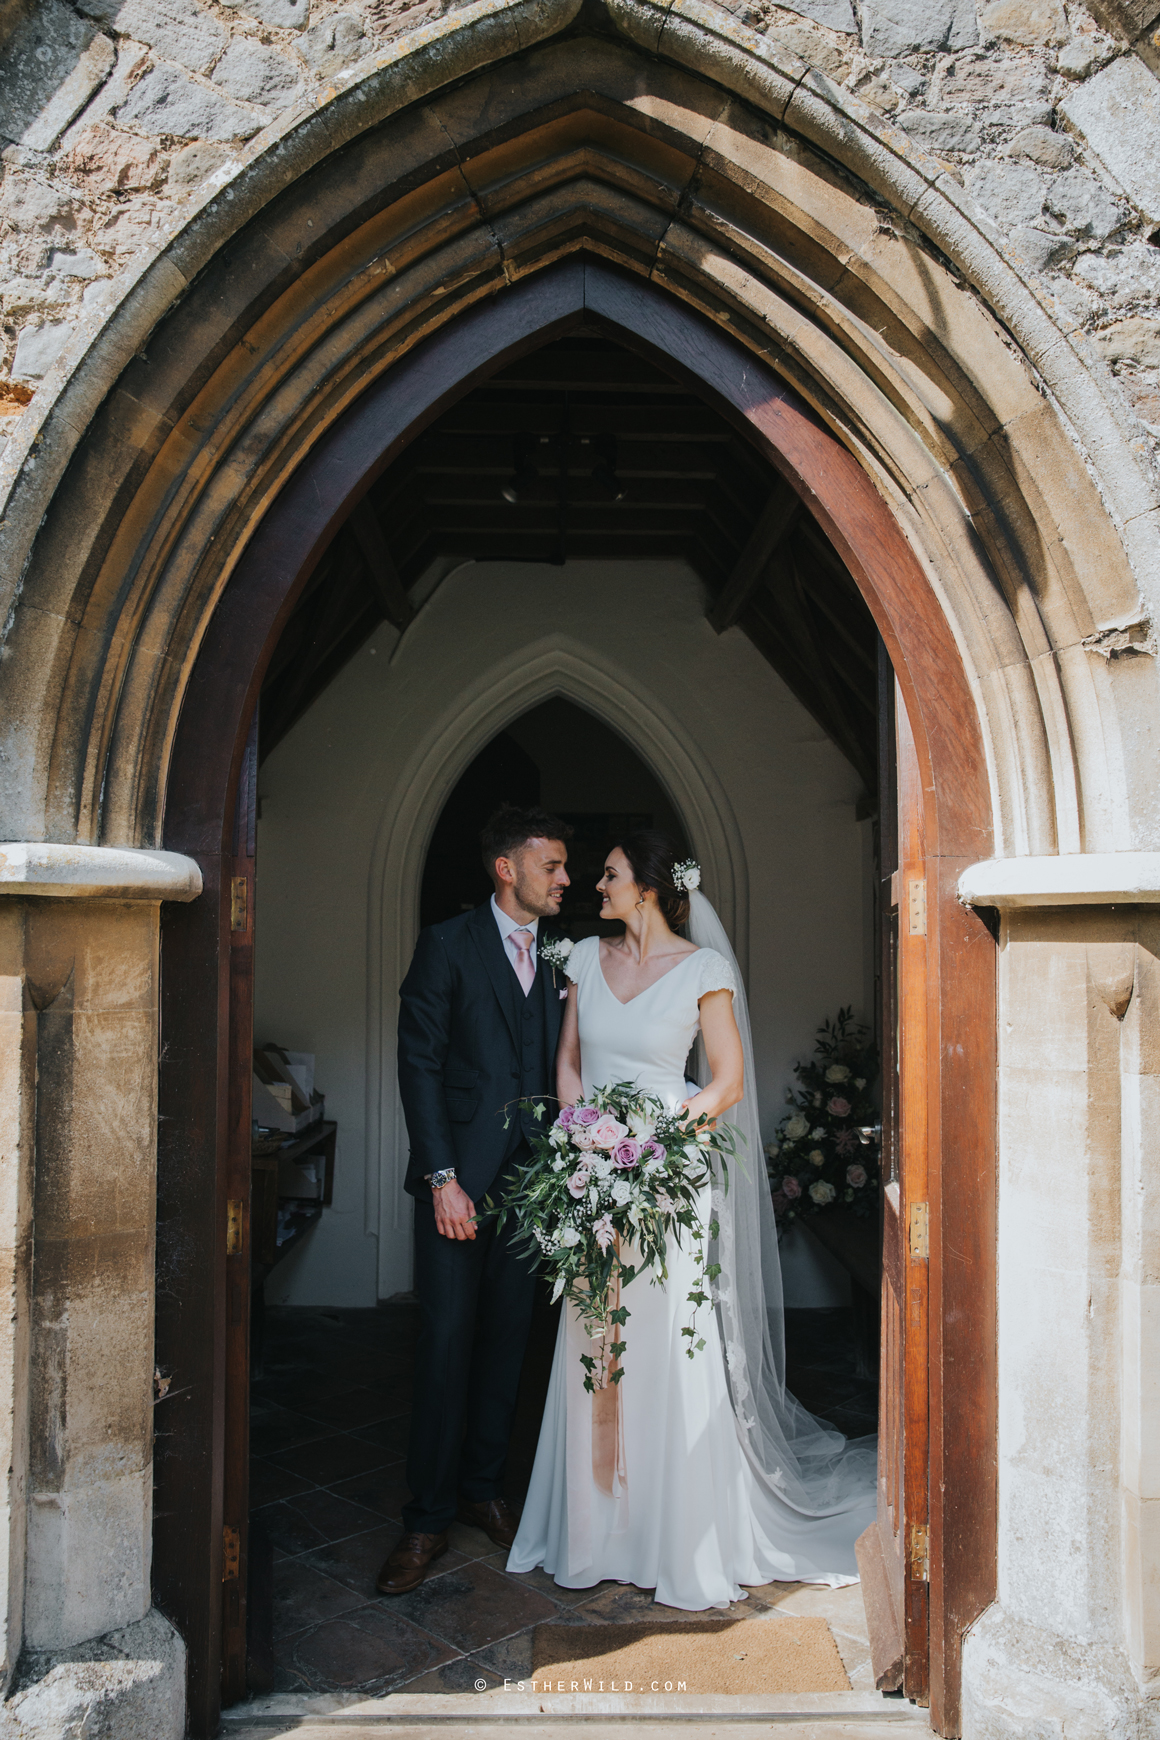 Wootton_Wedding_Copyright_Esther_Wild_Photographer_IMG_1469.jpg